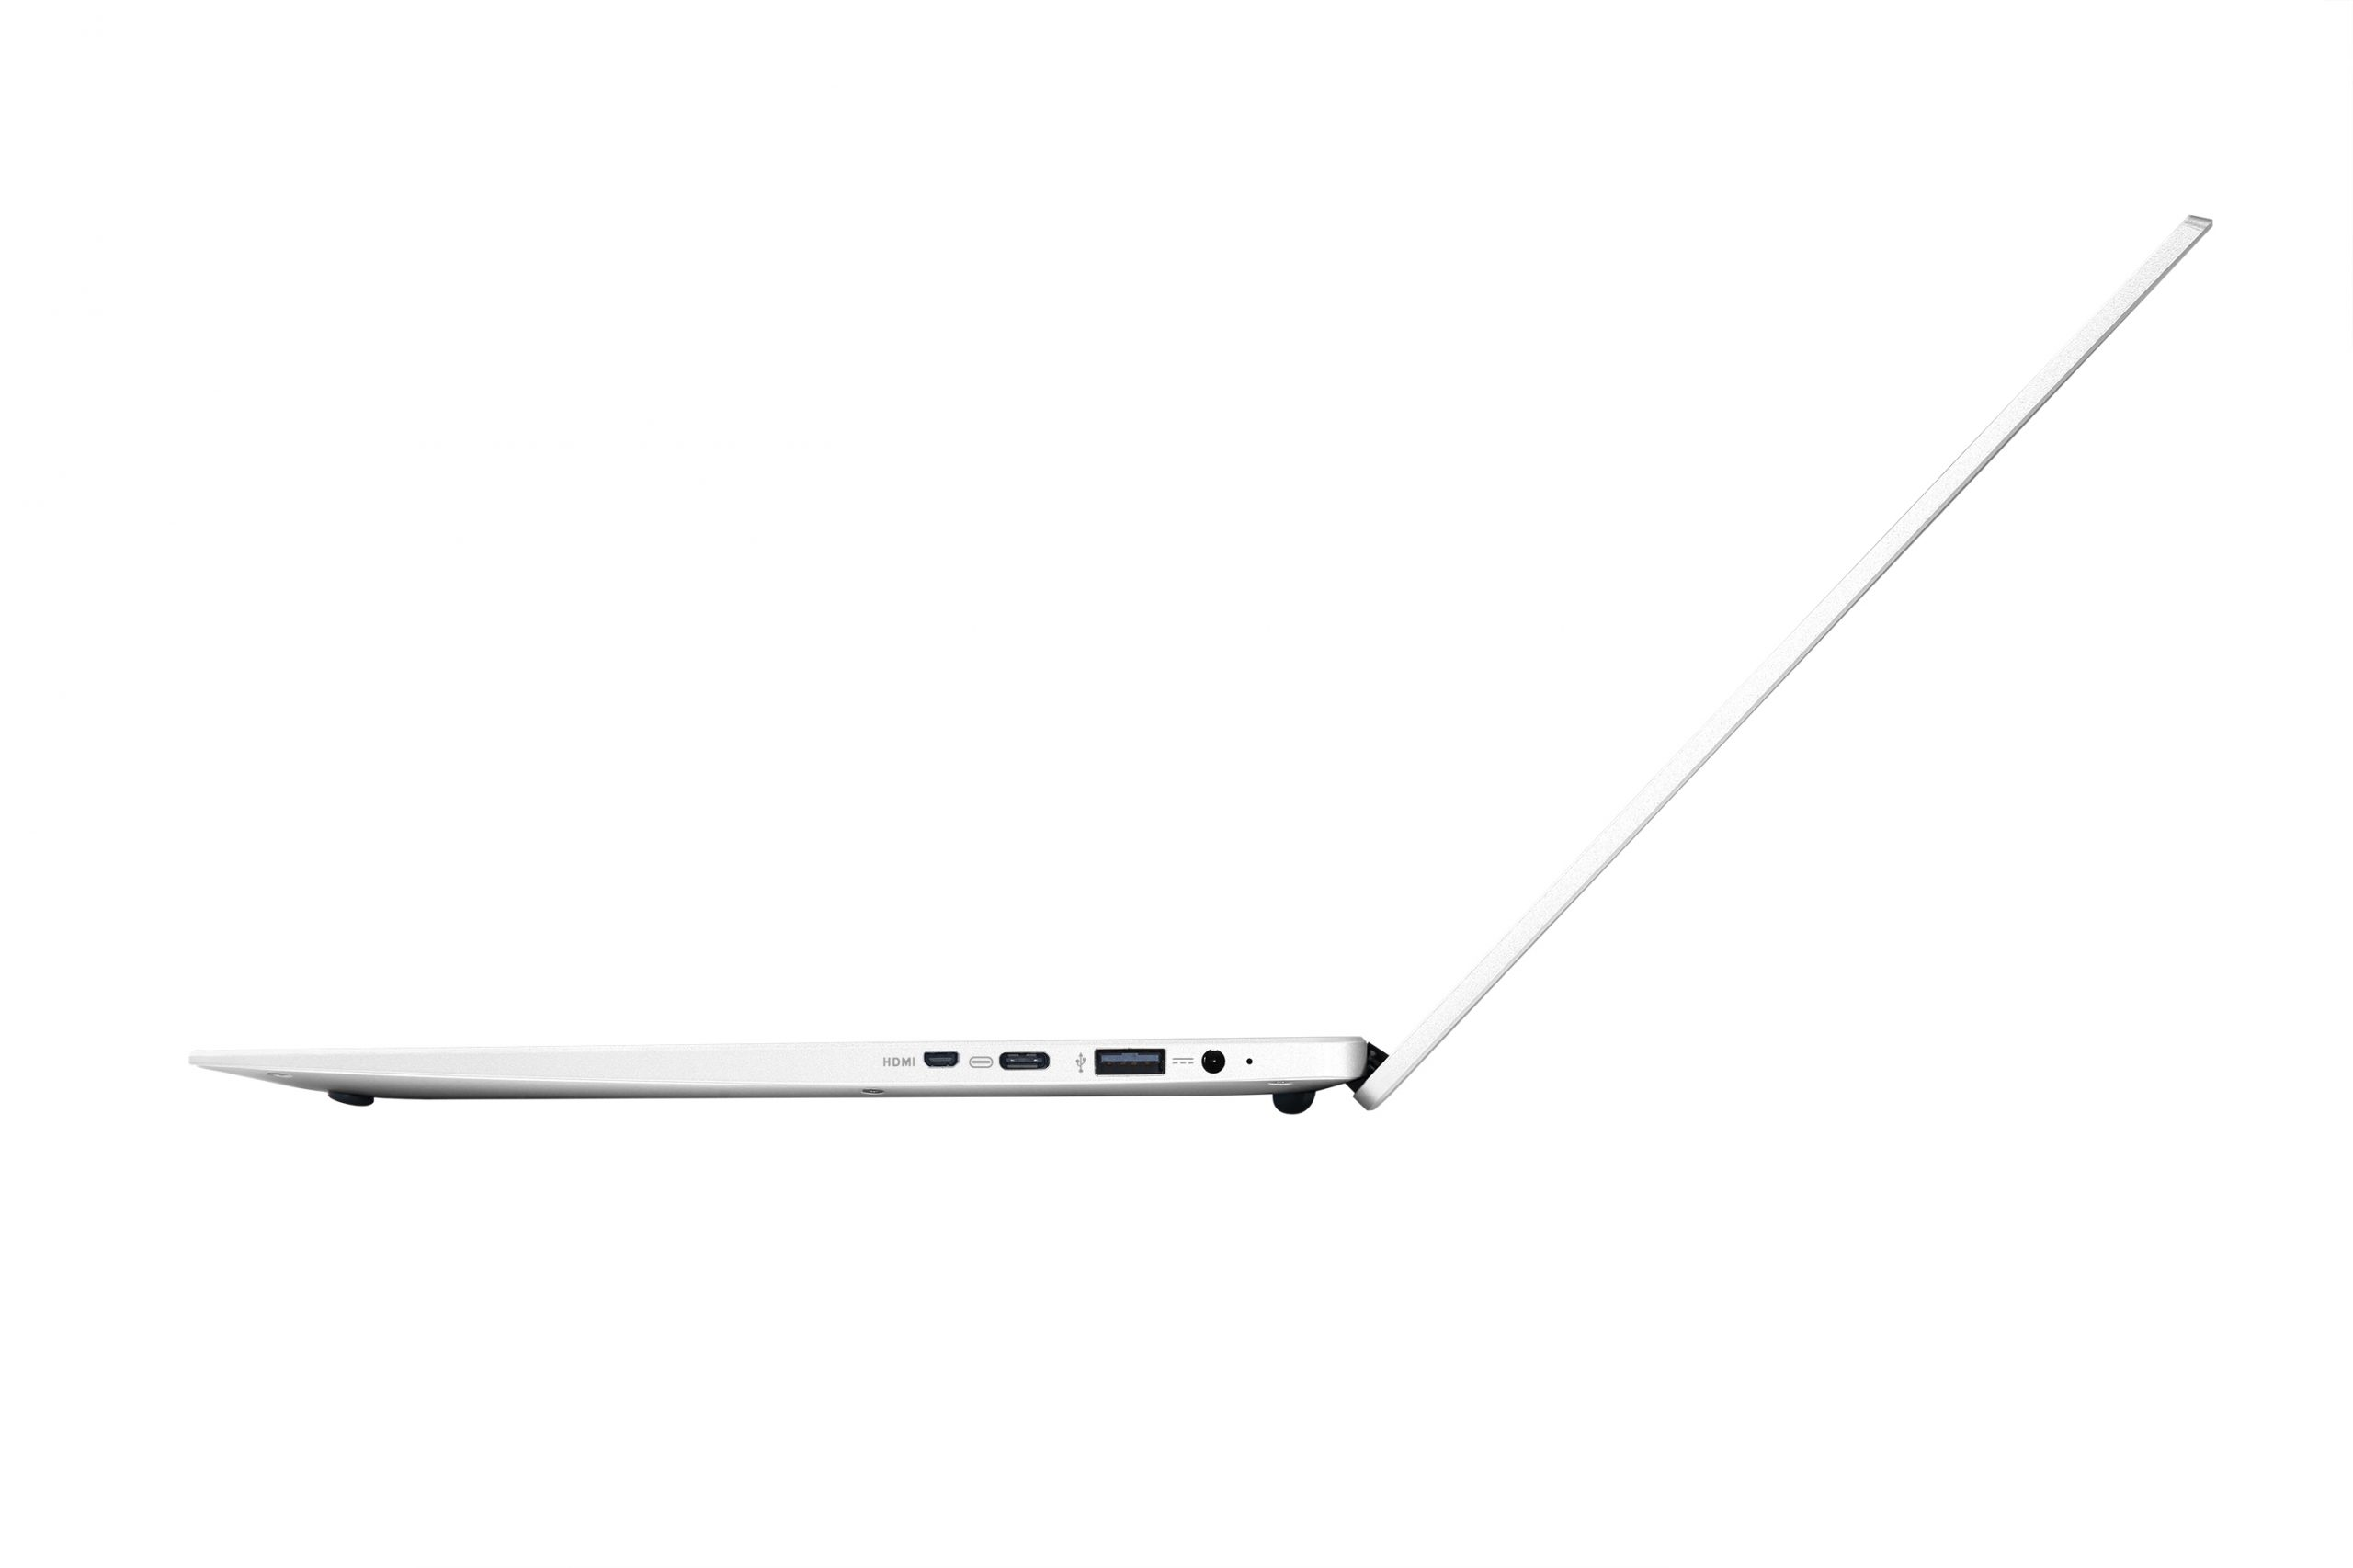 https://t2qwifi.com/wp-content/uploads/2020/07/avita_laptop_2020_angle10_0021_high_pearl-white-scaled.jpg